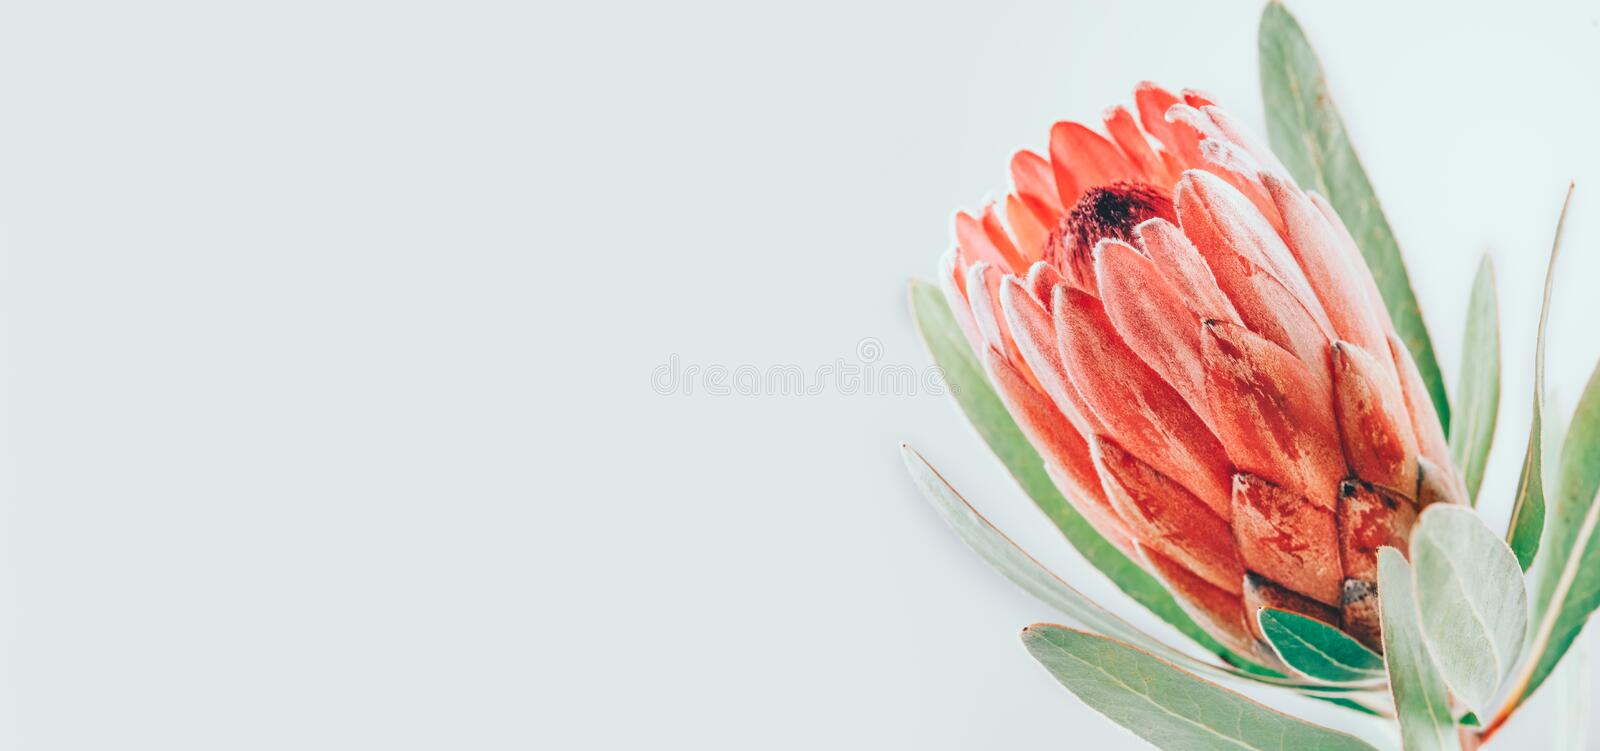 Protea bud closeup. Pink King Protea flower isolated on grey background. Beautiful fashion flower macro shot. Valentine`s Day. Gift stock illustration